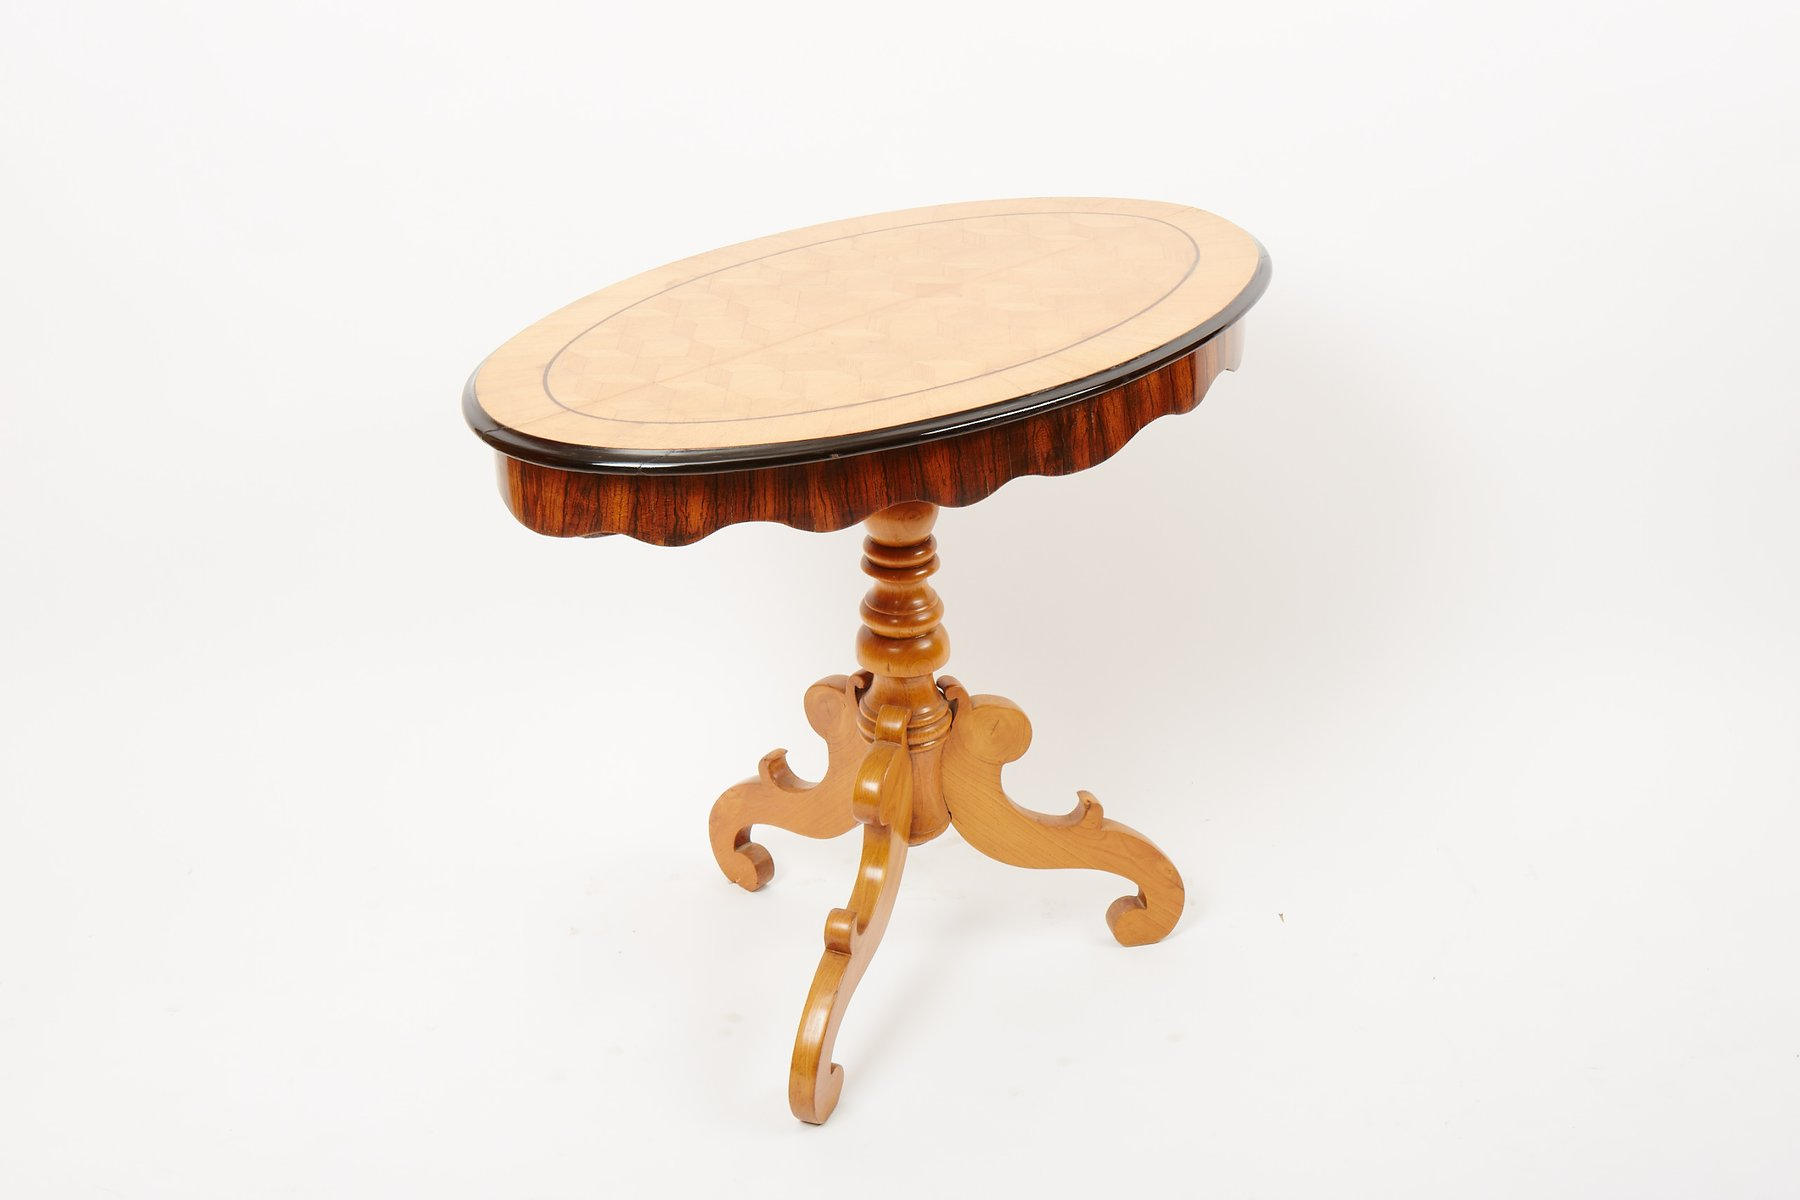 oval side table. Antique Veneered Oval Side Table 5. $842.00. Price Per Piece